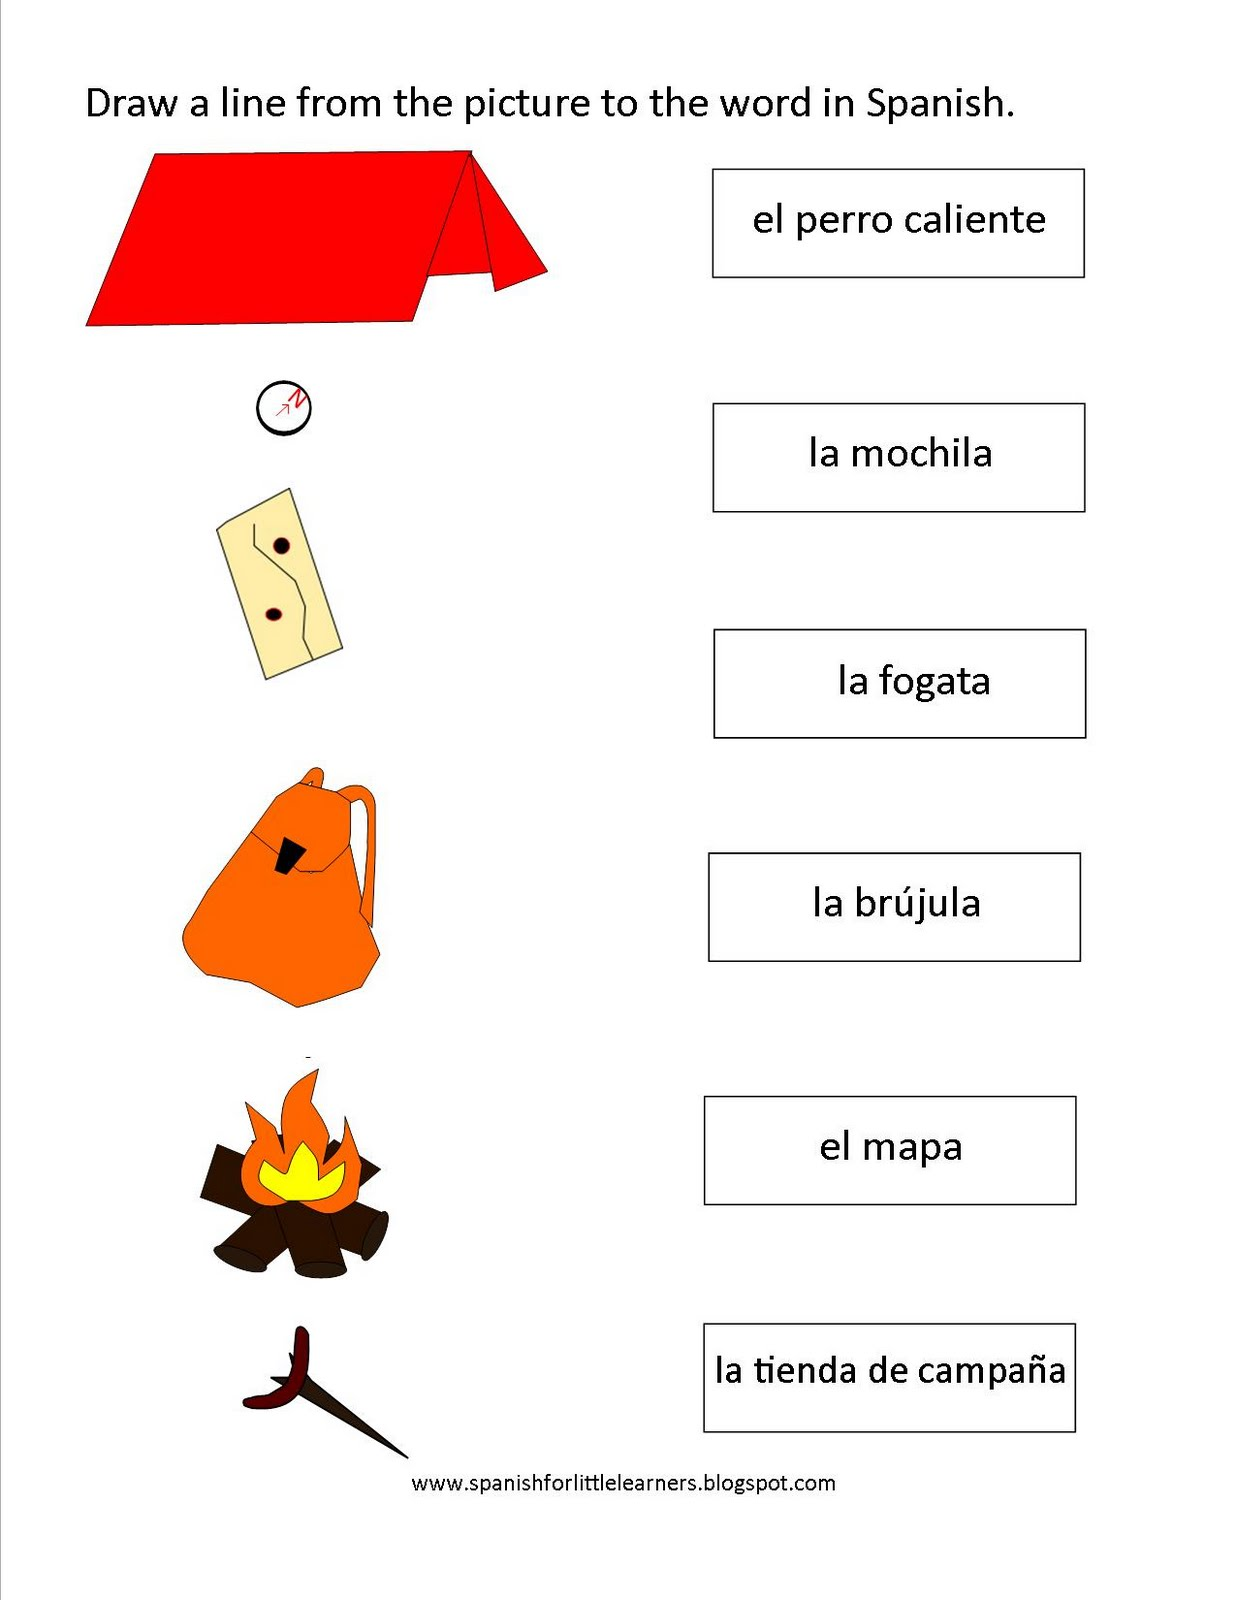 Spanish Vocabulary Printables Image